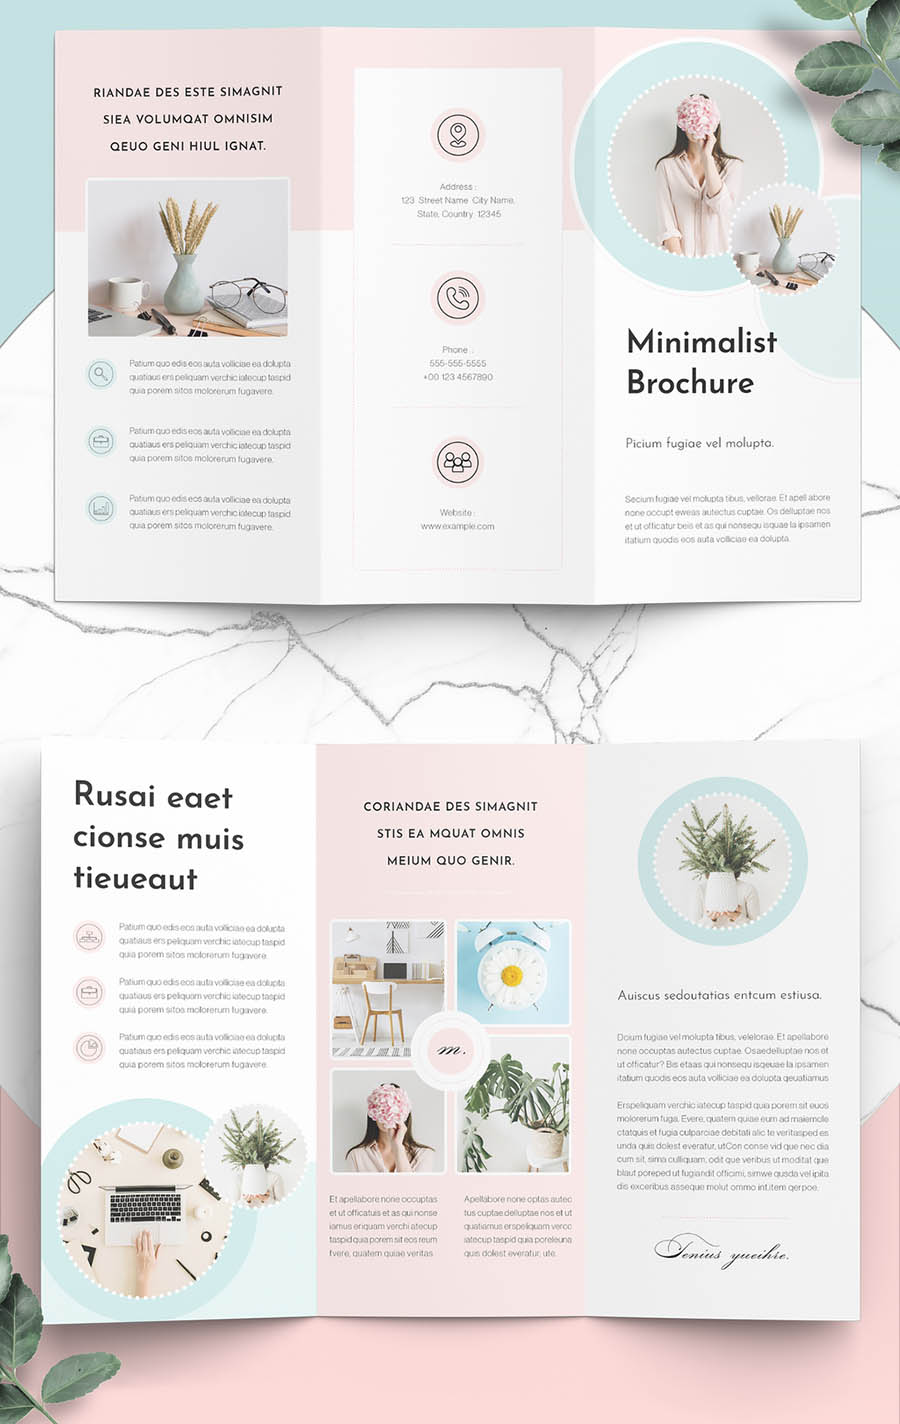 Minimalist Brochure Layout with Mint and Pink Accents